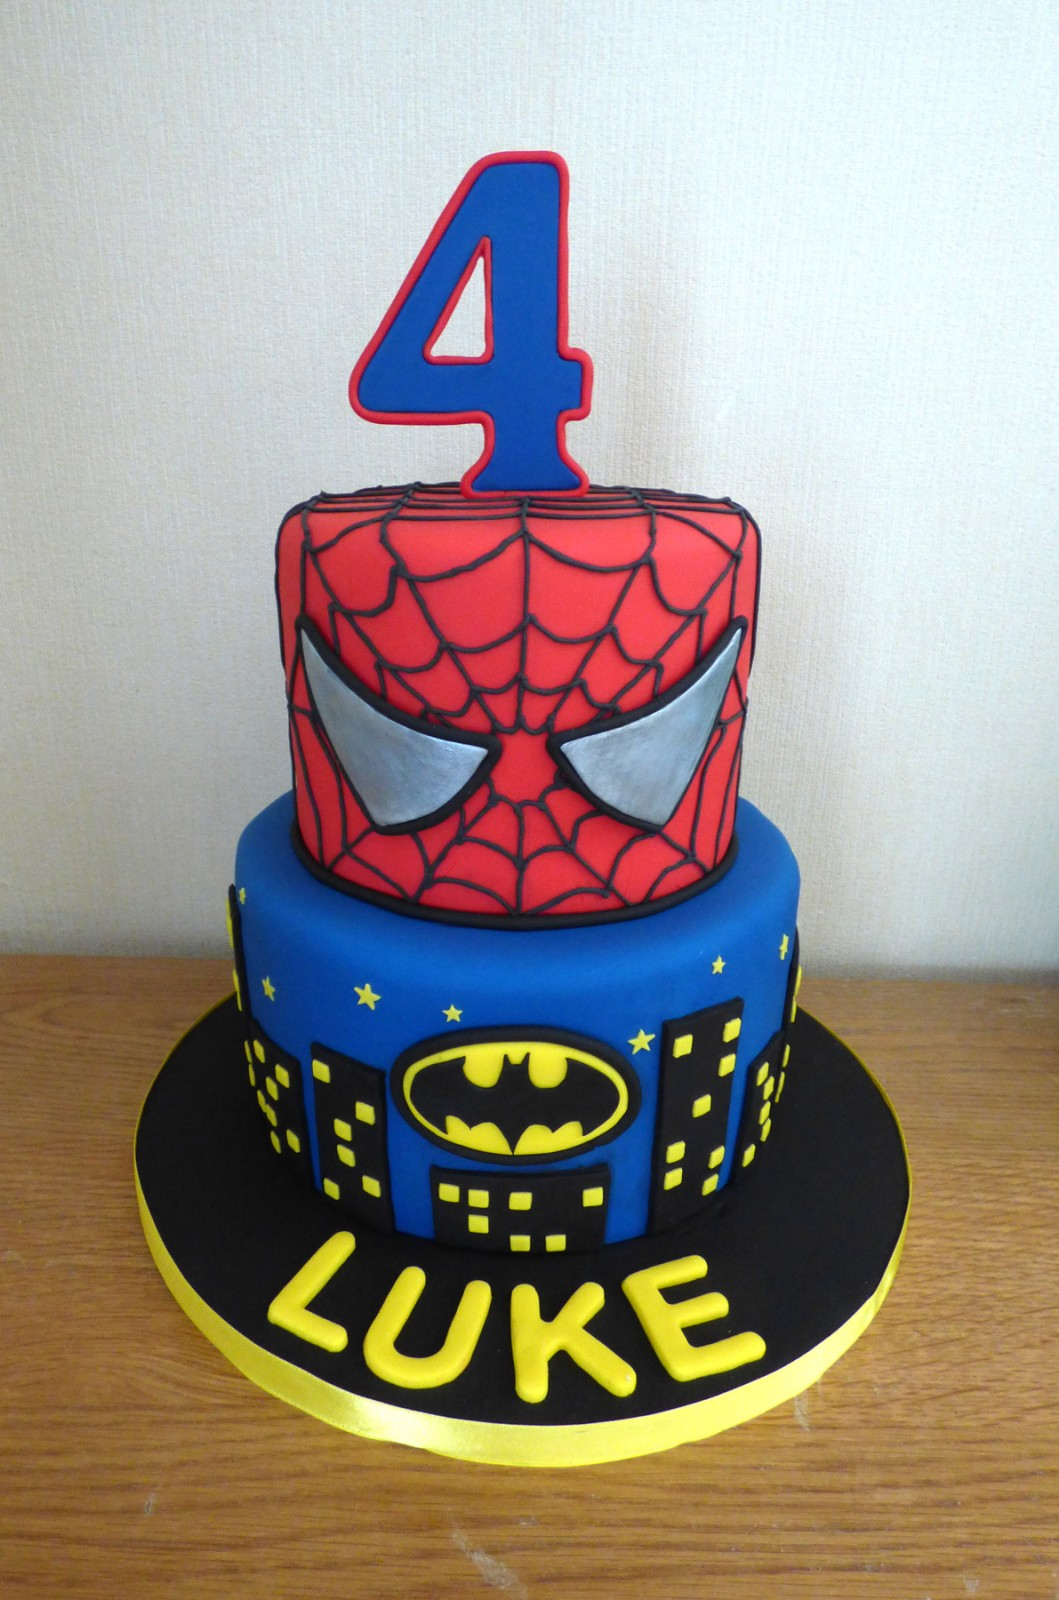 Wondrous 2 Tier Batman And Spiderman Birthday Cake Susies Cakes Funny Birthday Cards Online Inifofree Goldxyz